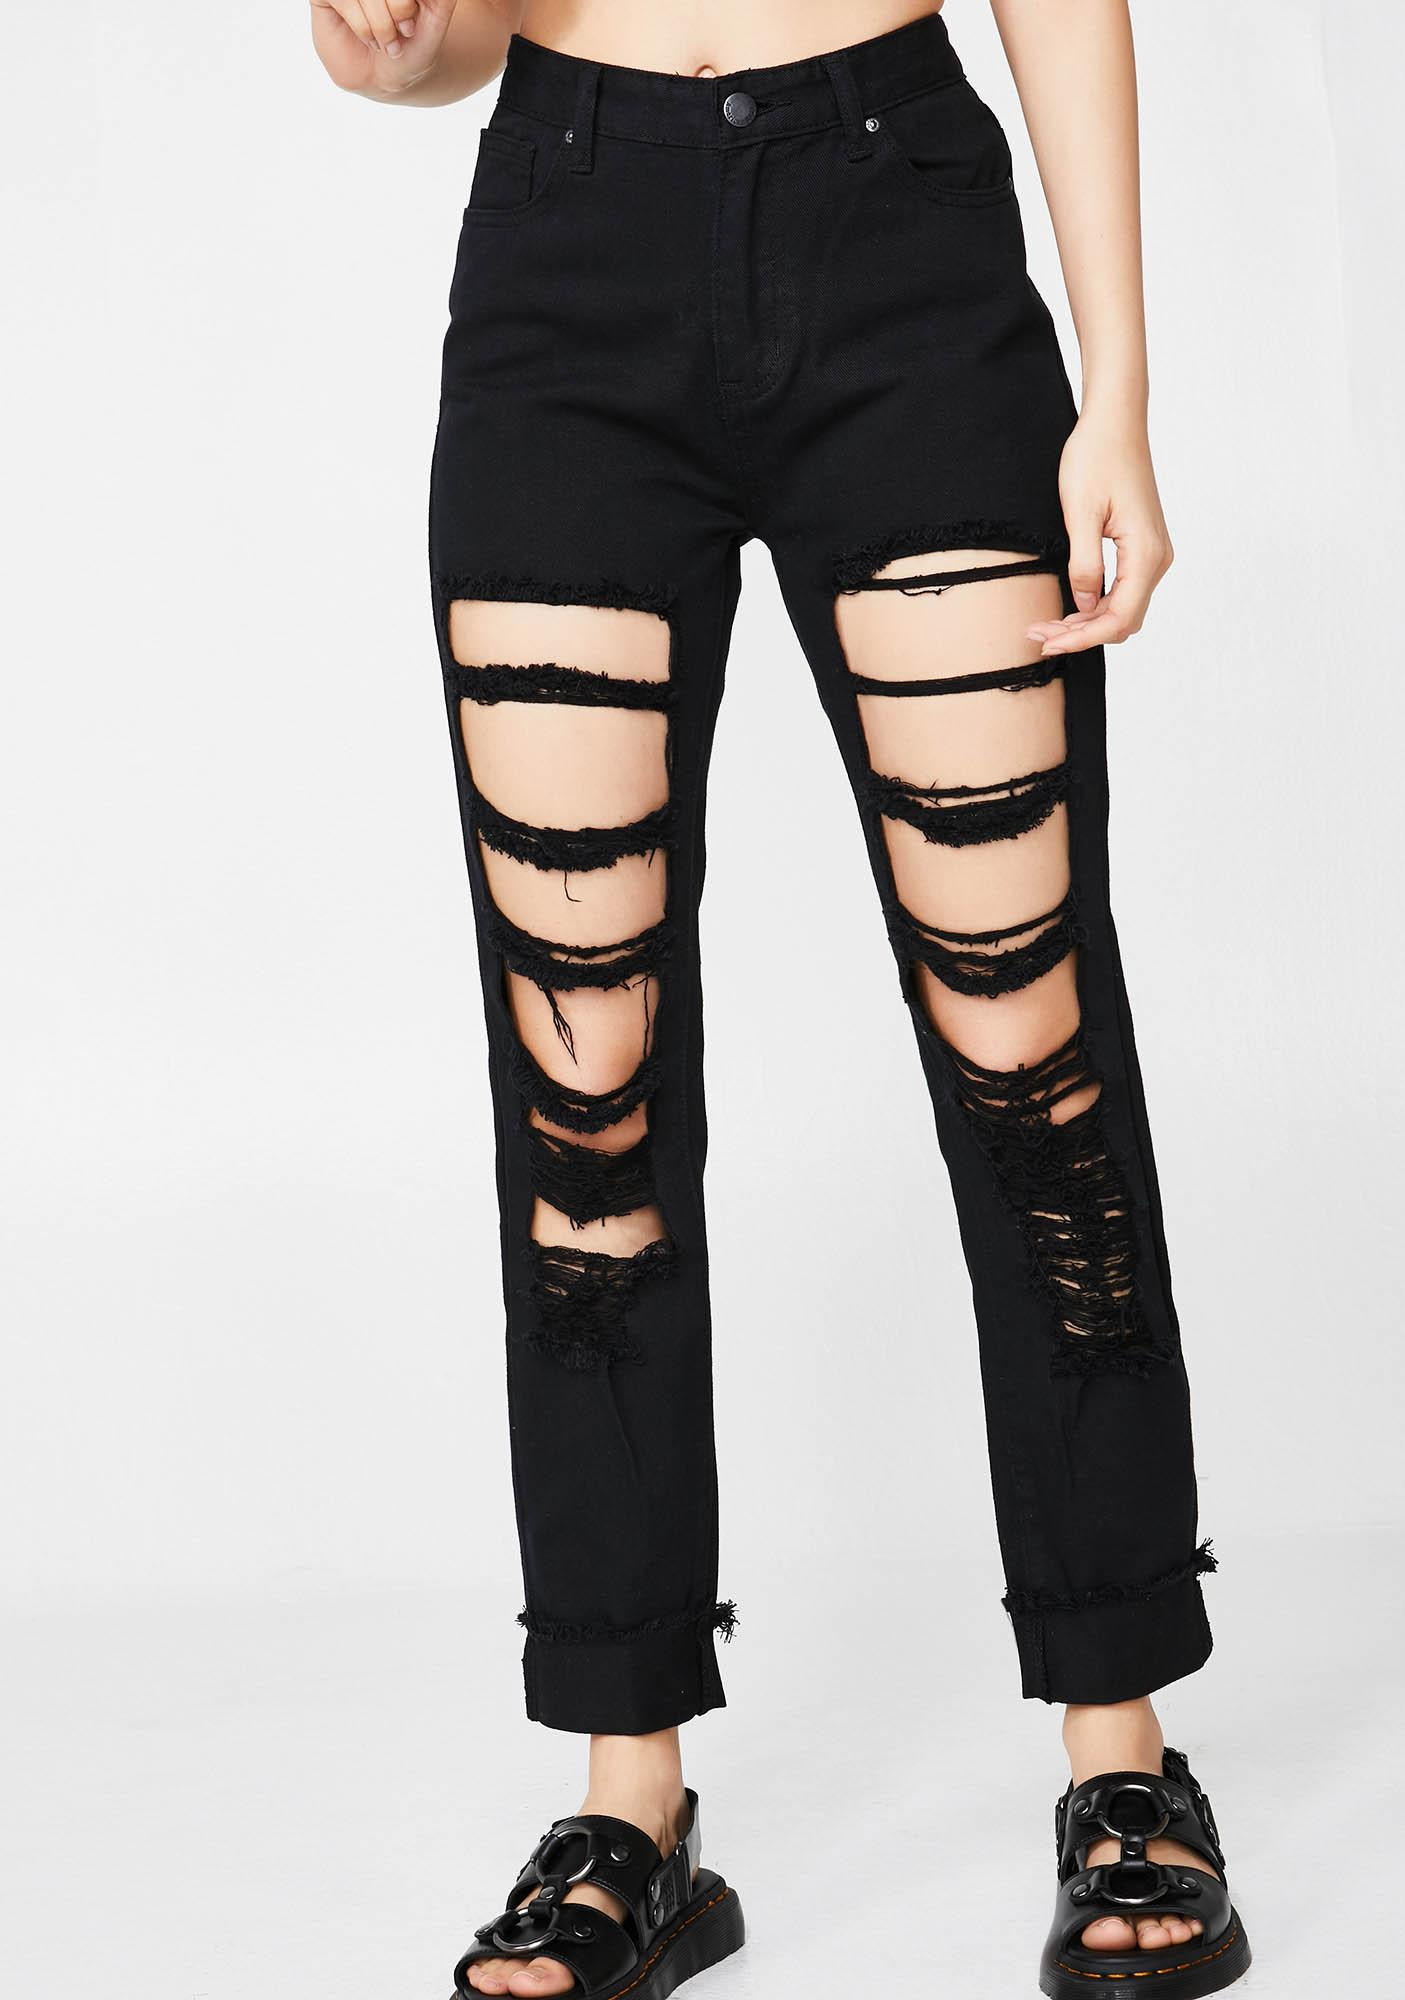 Say It Loud Distressed Jeans